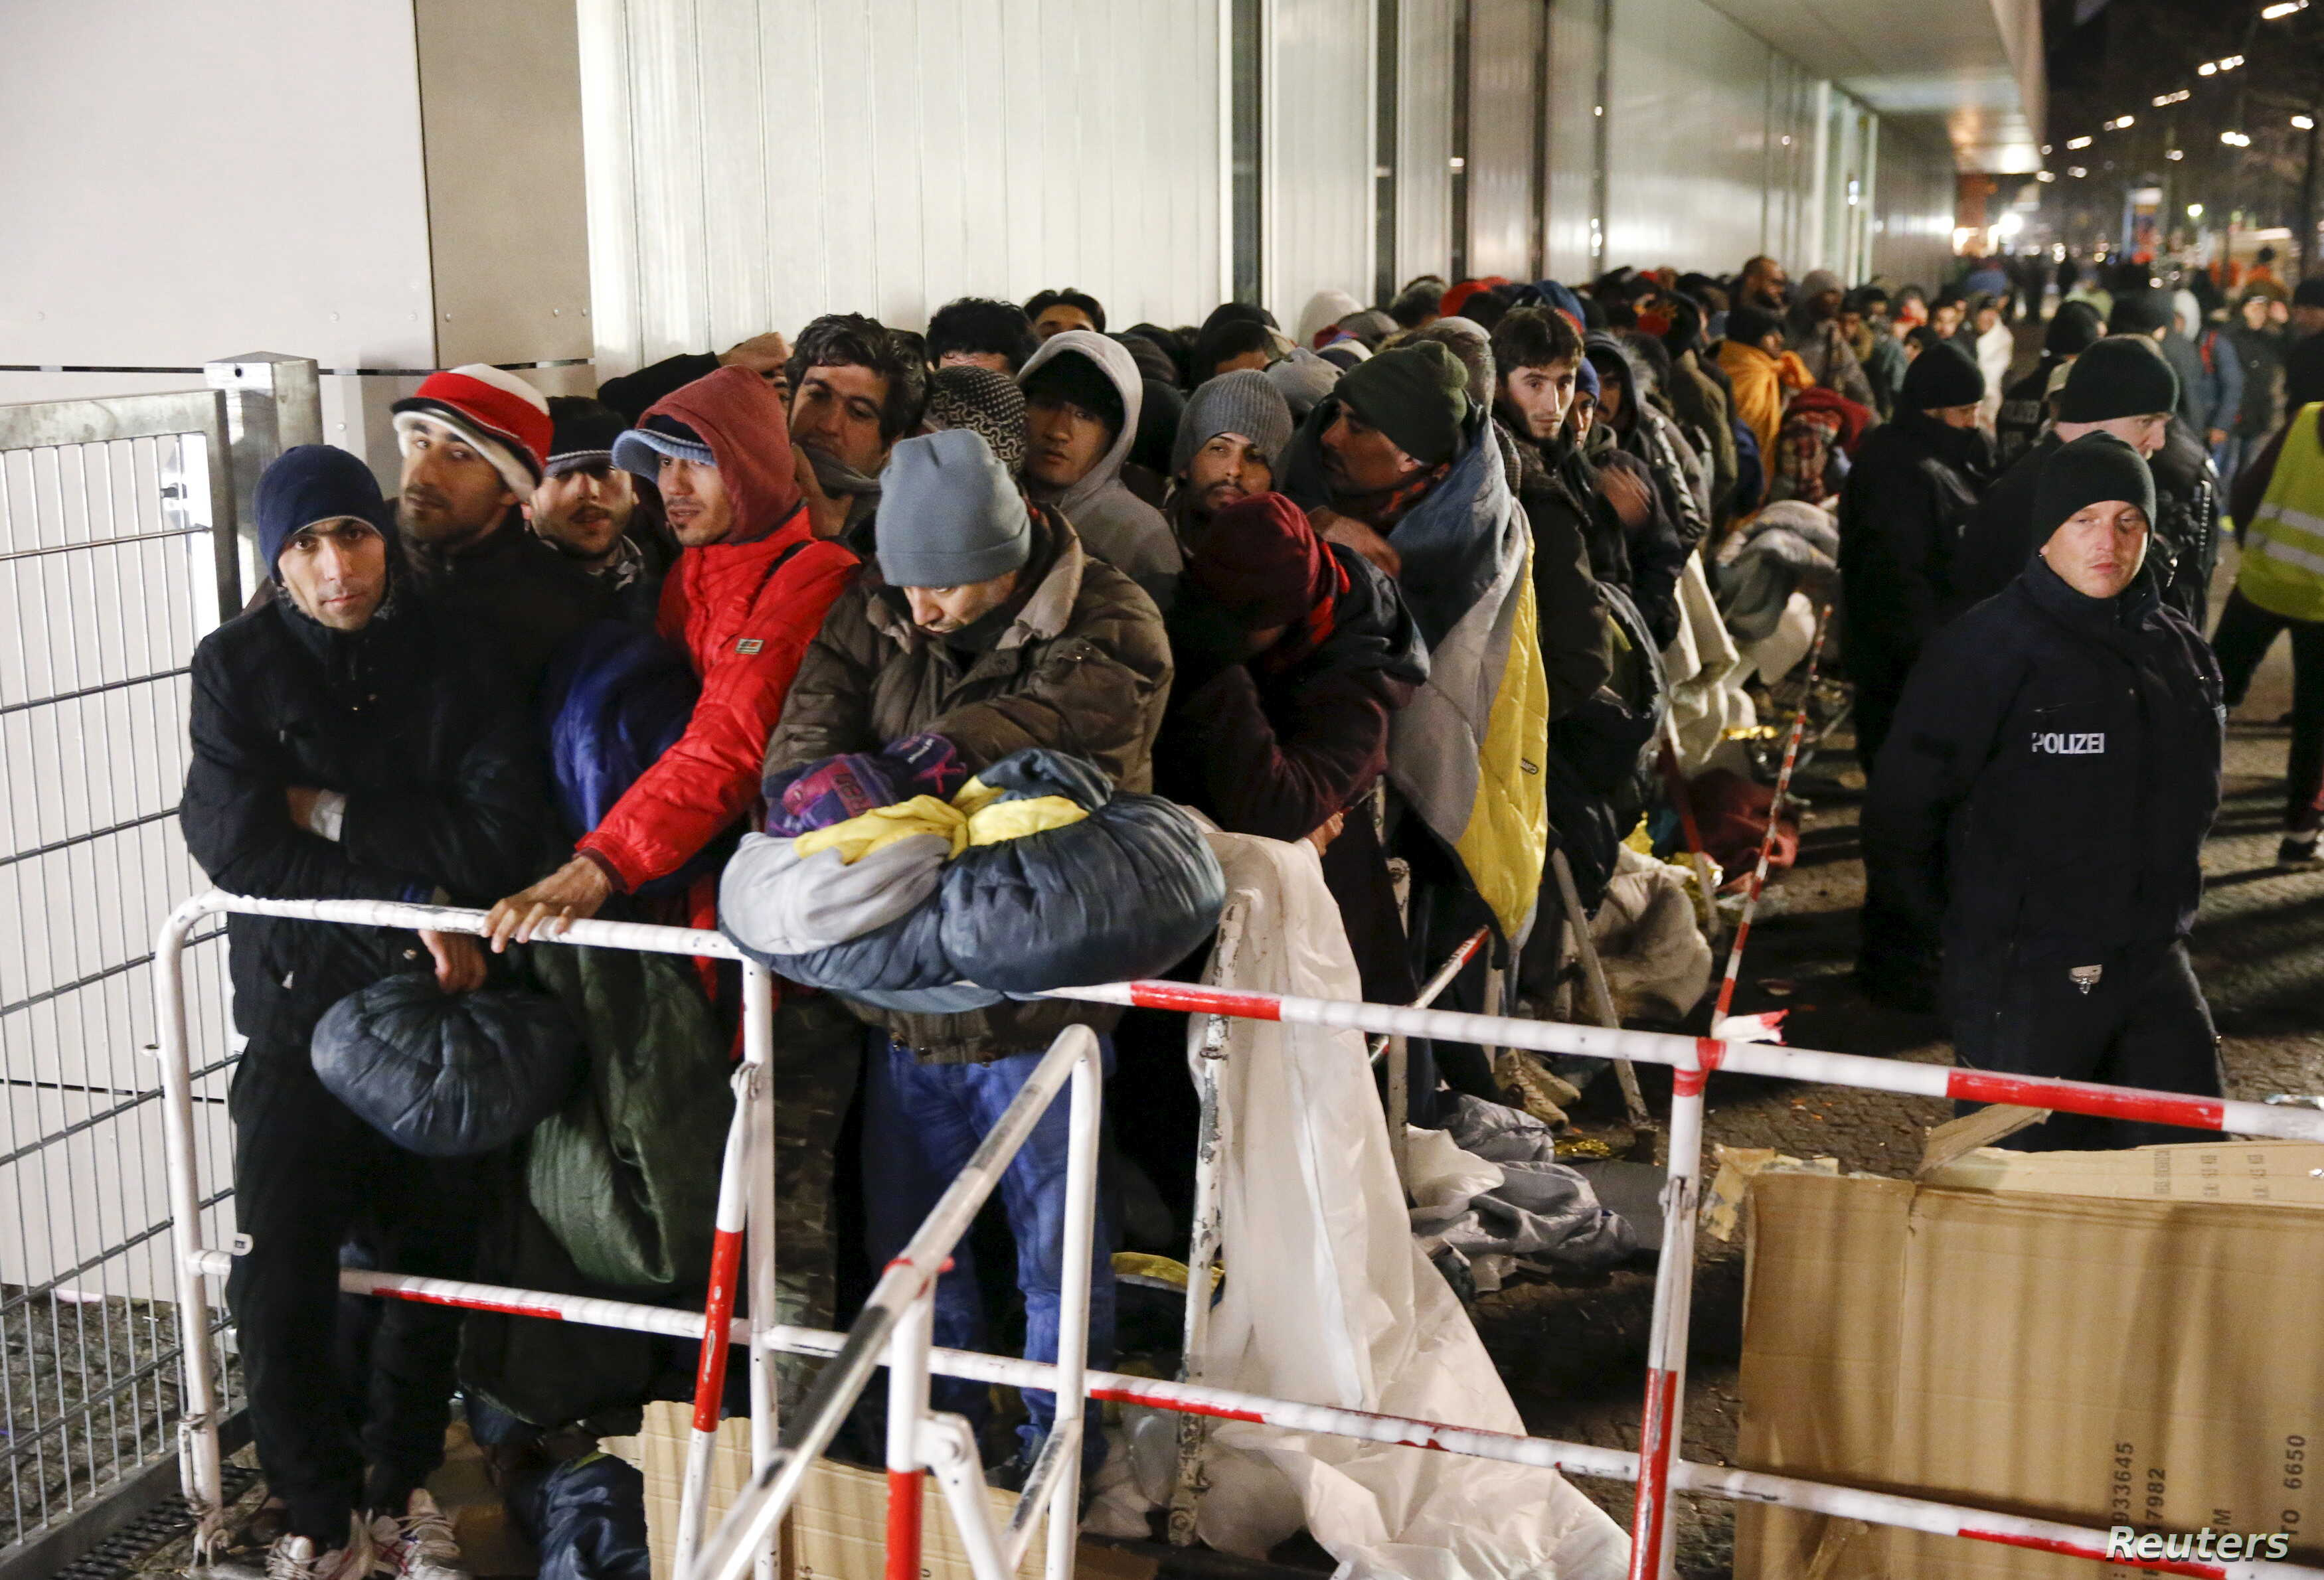 Migrants queue on a street to enter the compound outside the Berlin Office of Health and Social Affairs (LAGESO) for their registration process in Berlin, Germany, Dec. 9, 2015.